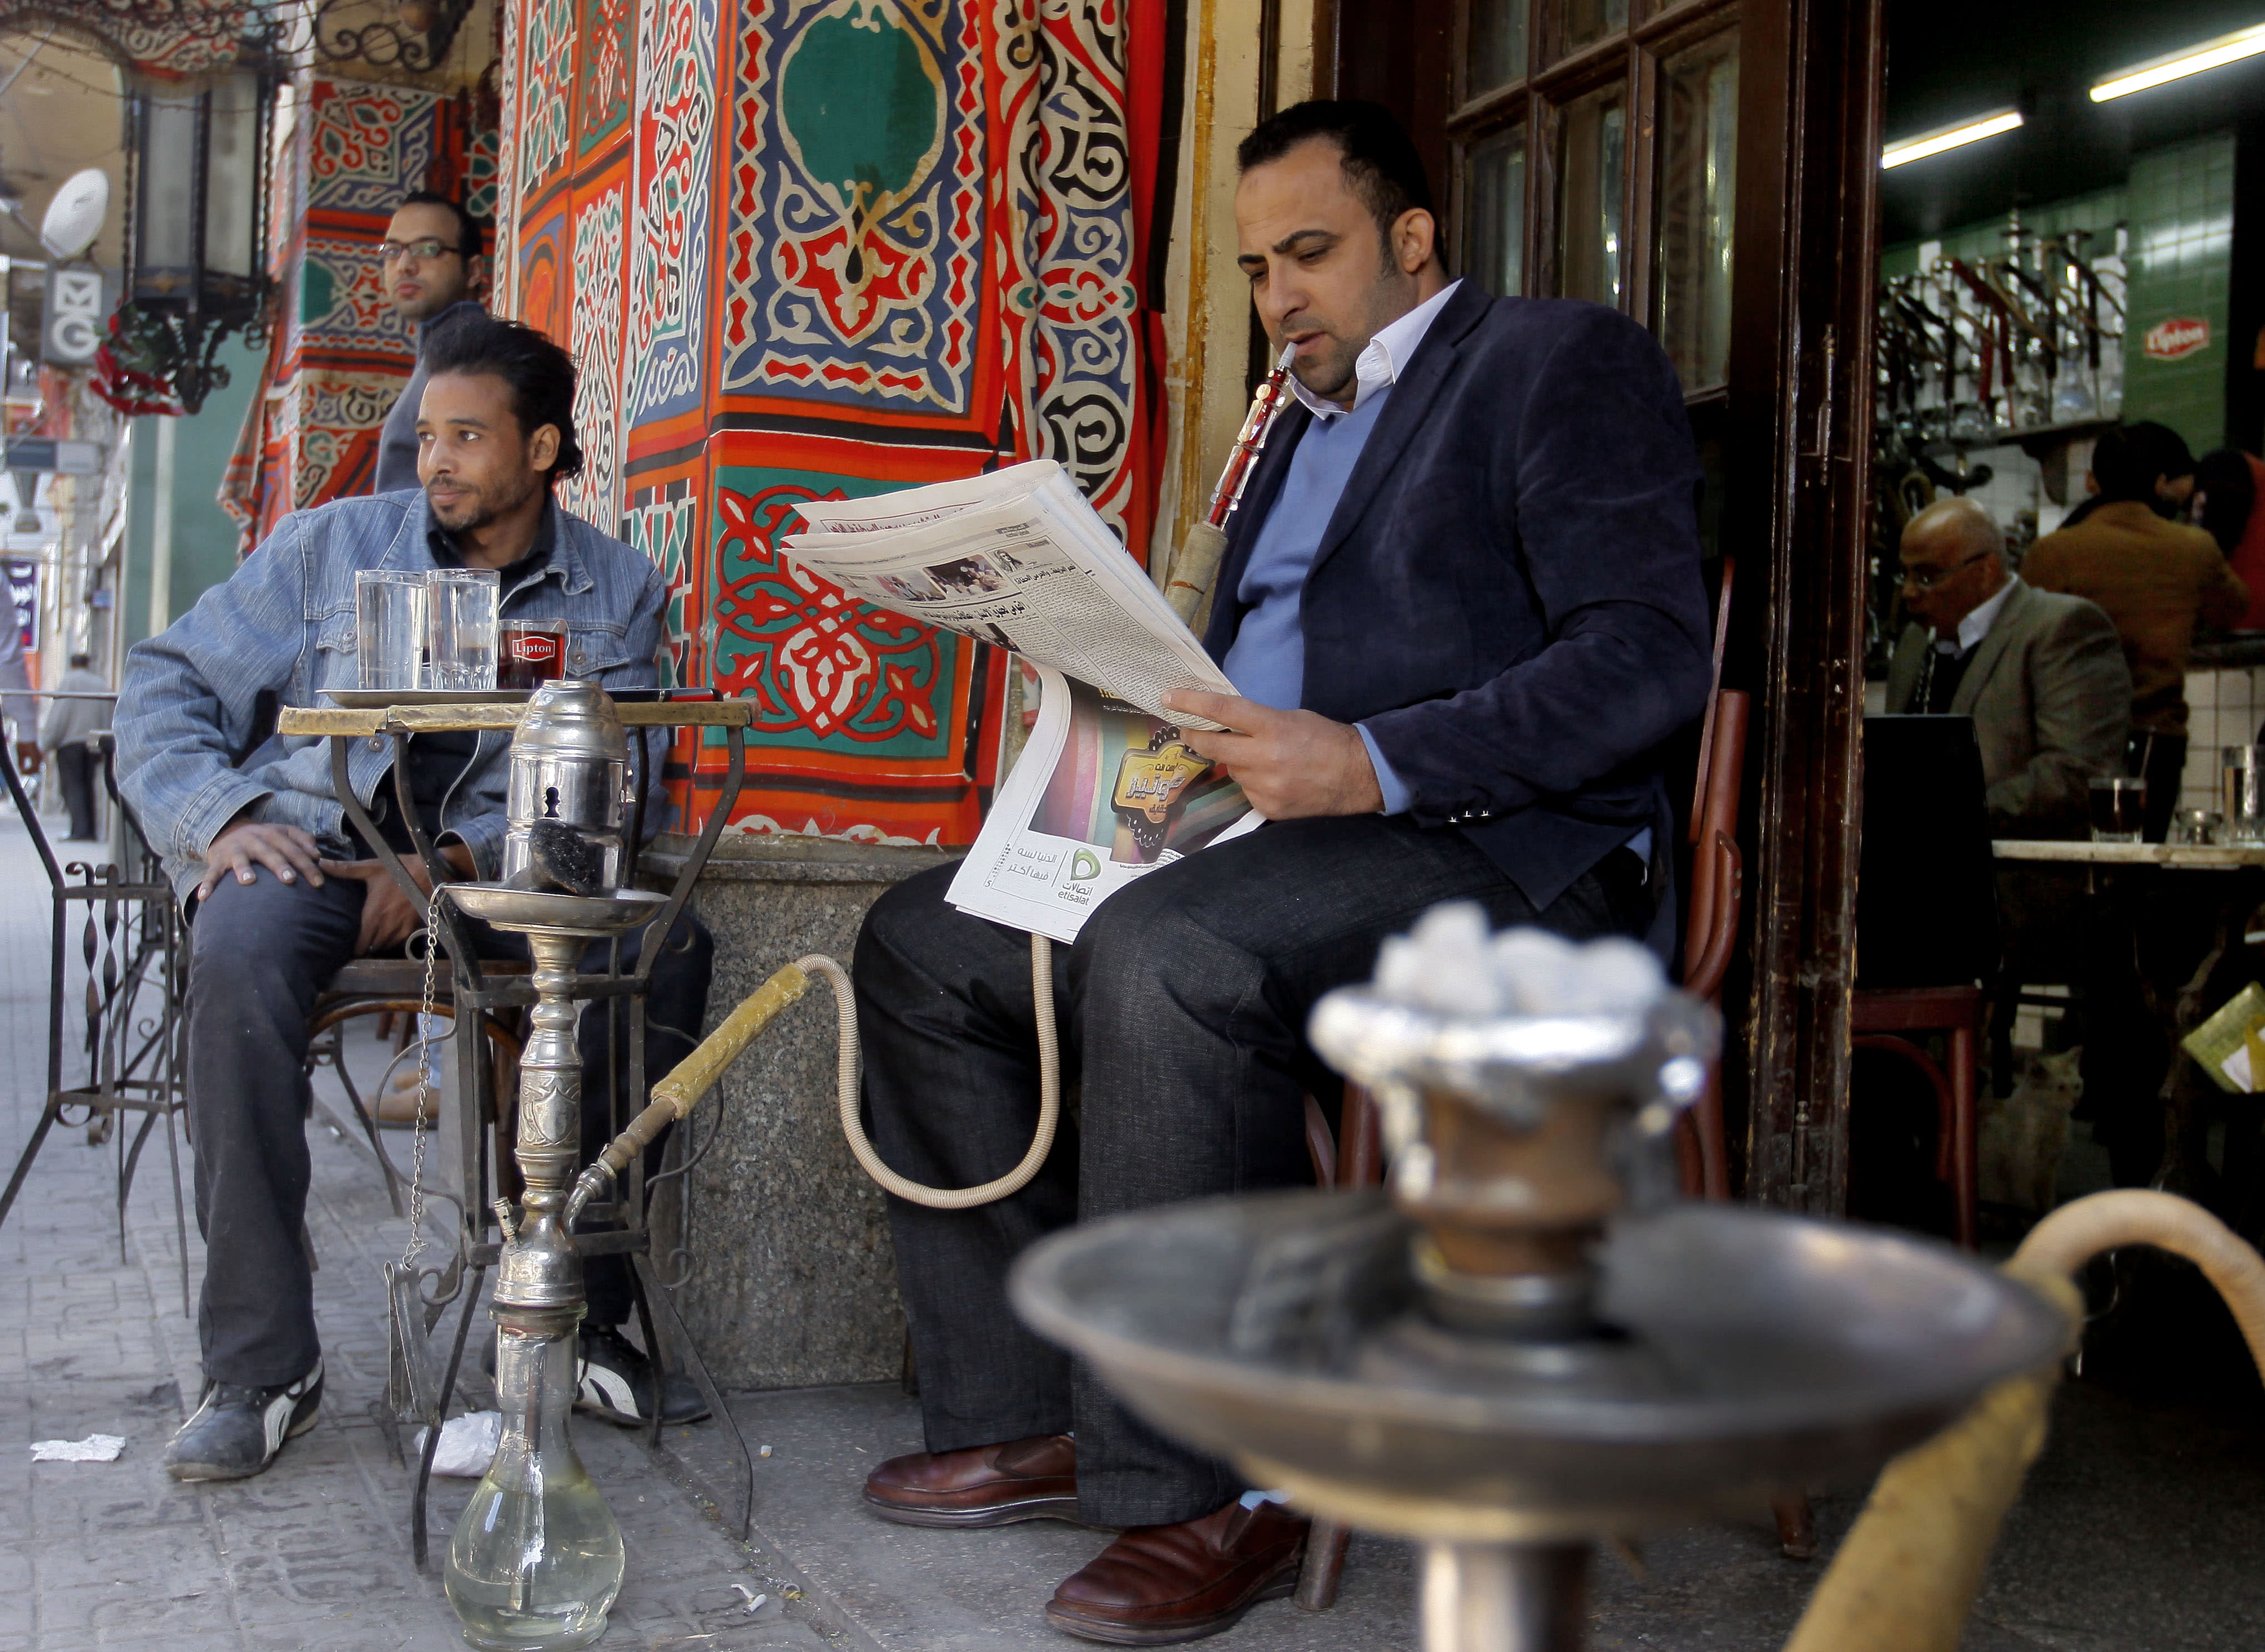 """An Egyptian man reads a newspaper at a coffee shop in Cairo, Egypt, Sunday, Dec. 23, 2012. Egypt's opposition called Sunday for an investigation into allegations of vote fraud in the referendum on a deeply divisive Islamist-backed constitution after the Muslim Brotherhood, the main group backing the charter, claimed it passed with a 64 percent """"yes"""" vote. Official results have not been released yet and are expected on Monday. (AP Photo/Amr Nabil)"""